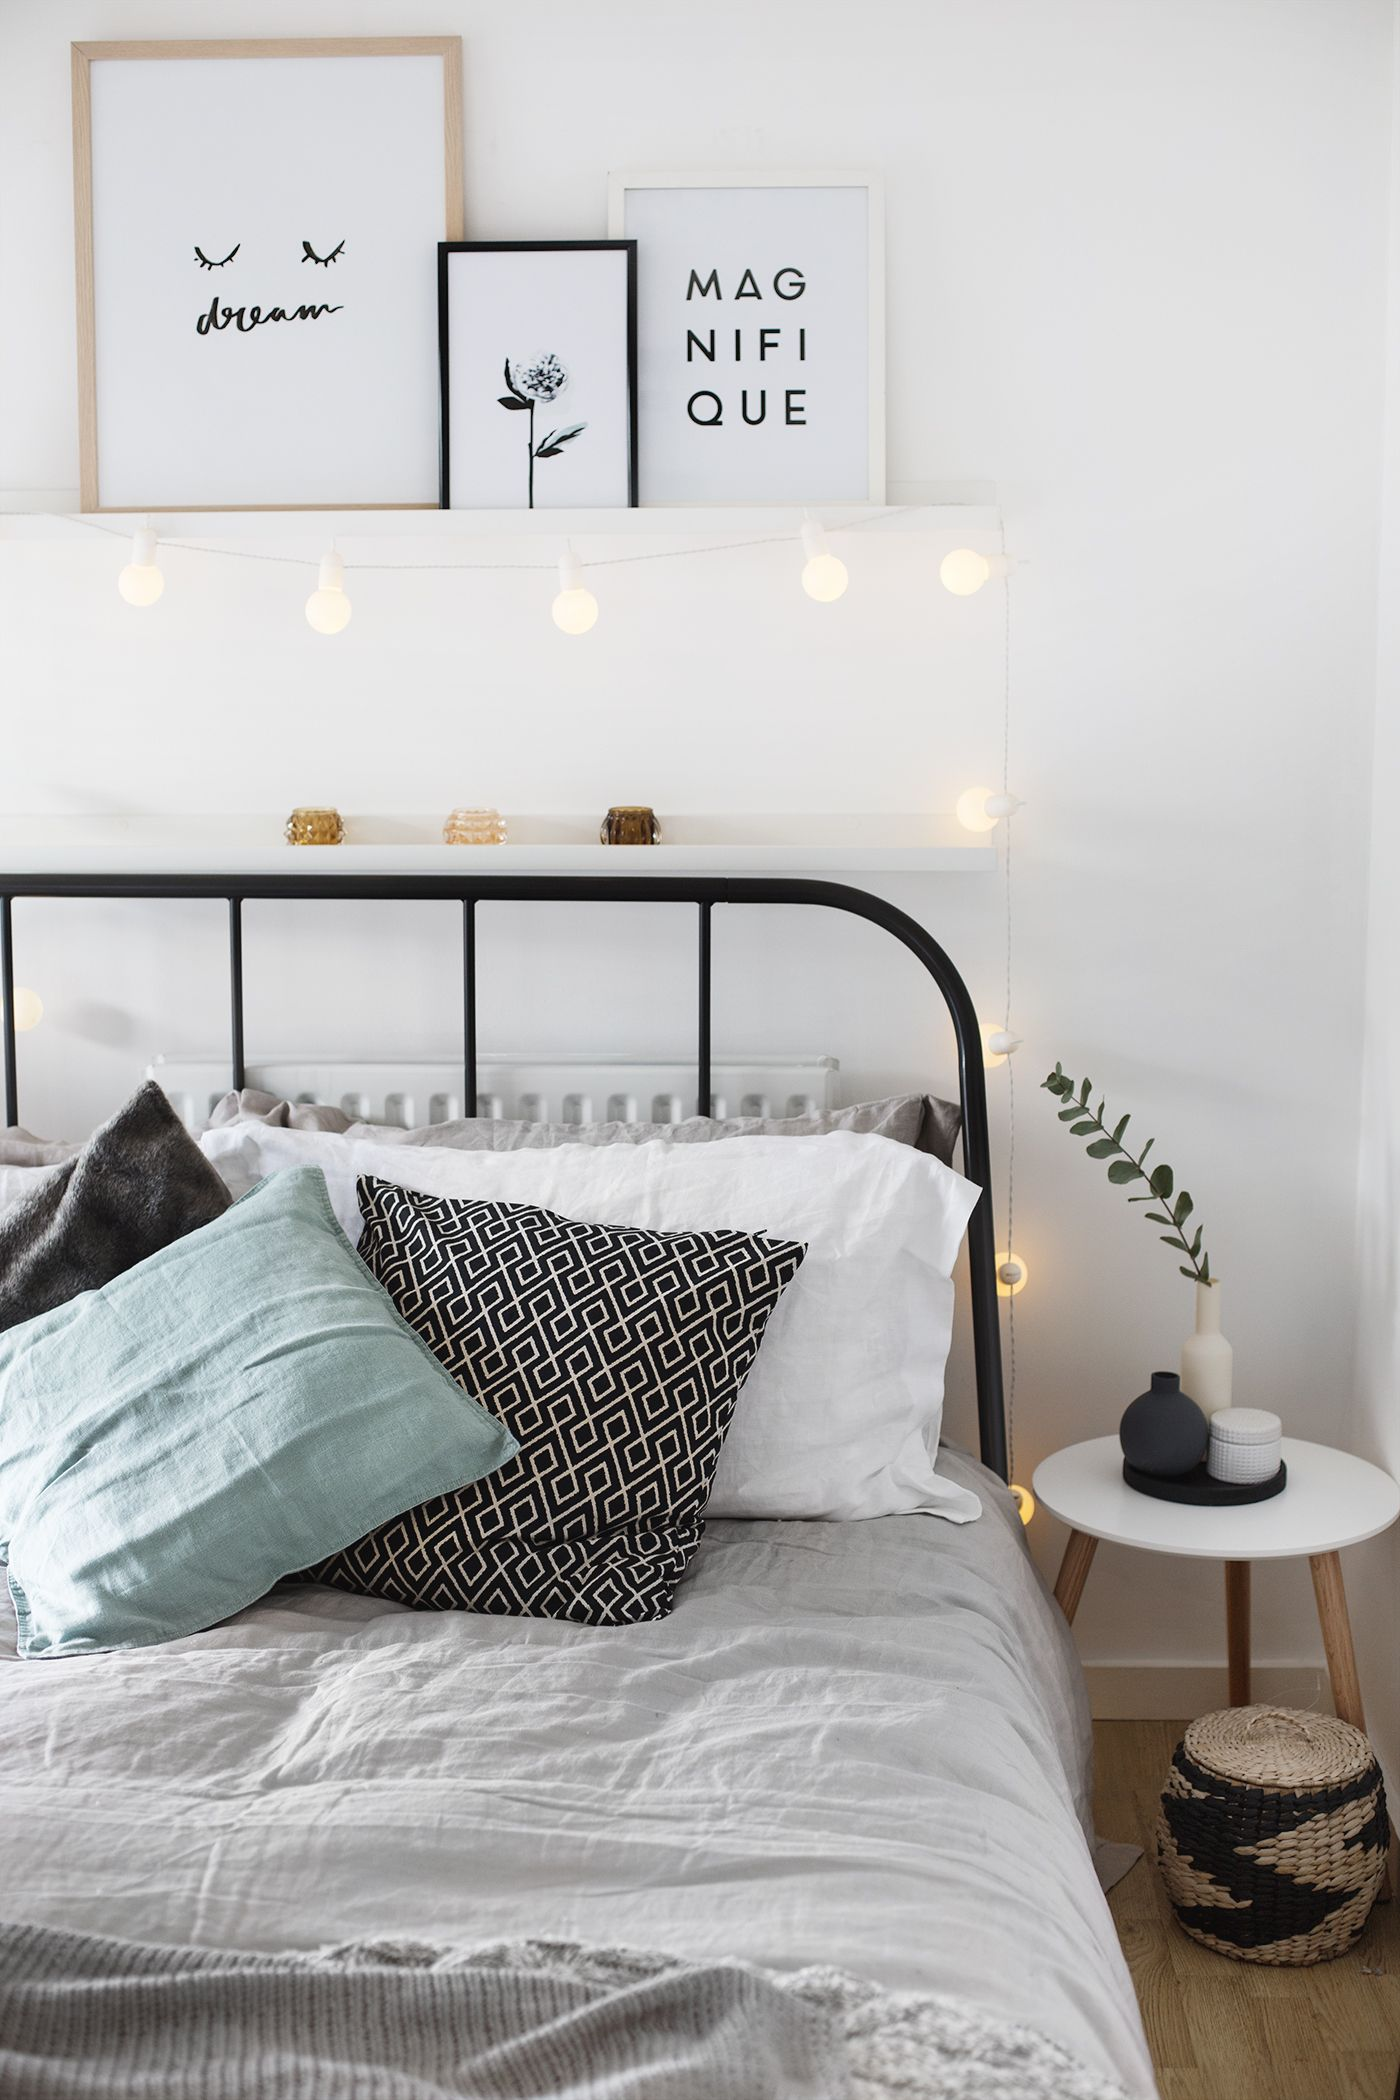 I've been gradually revealing our new flat to you guys as we've conquered each room one by one. The last room to the party is our guest bedroom which is still a huge novelty. W